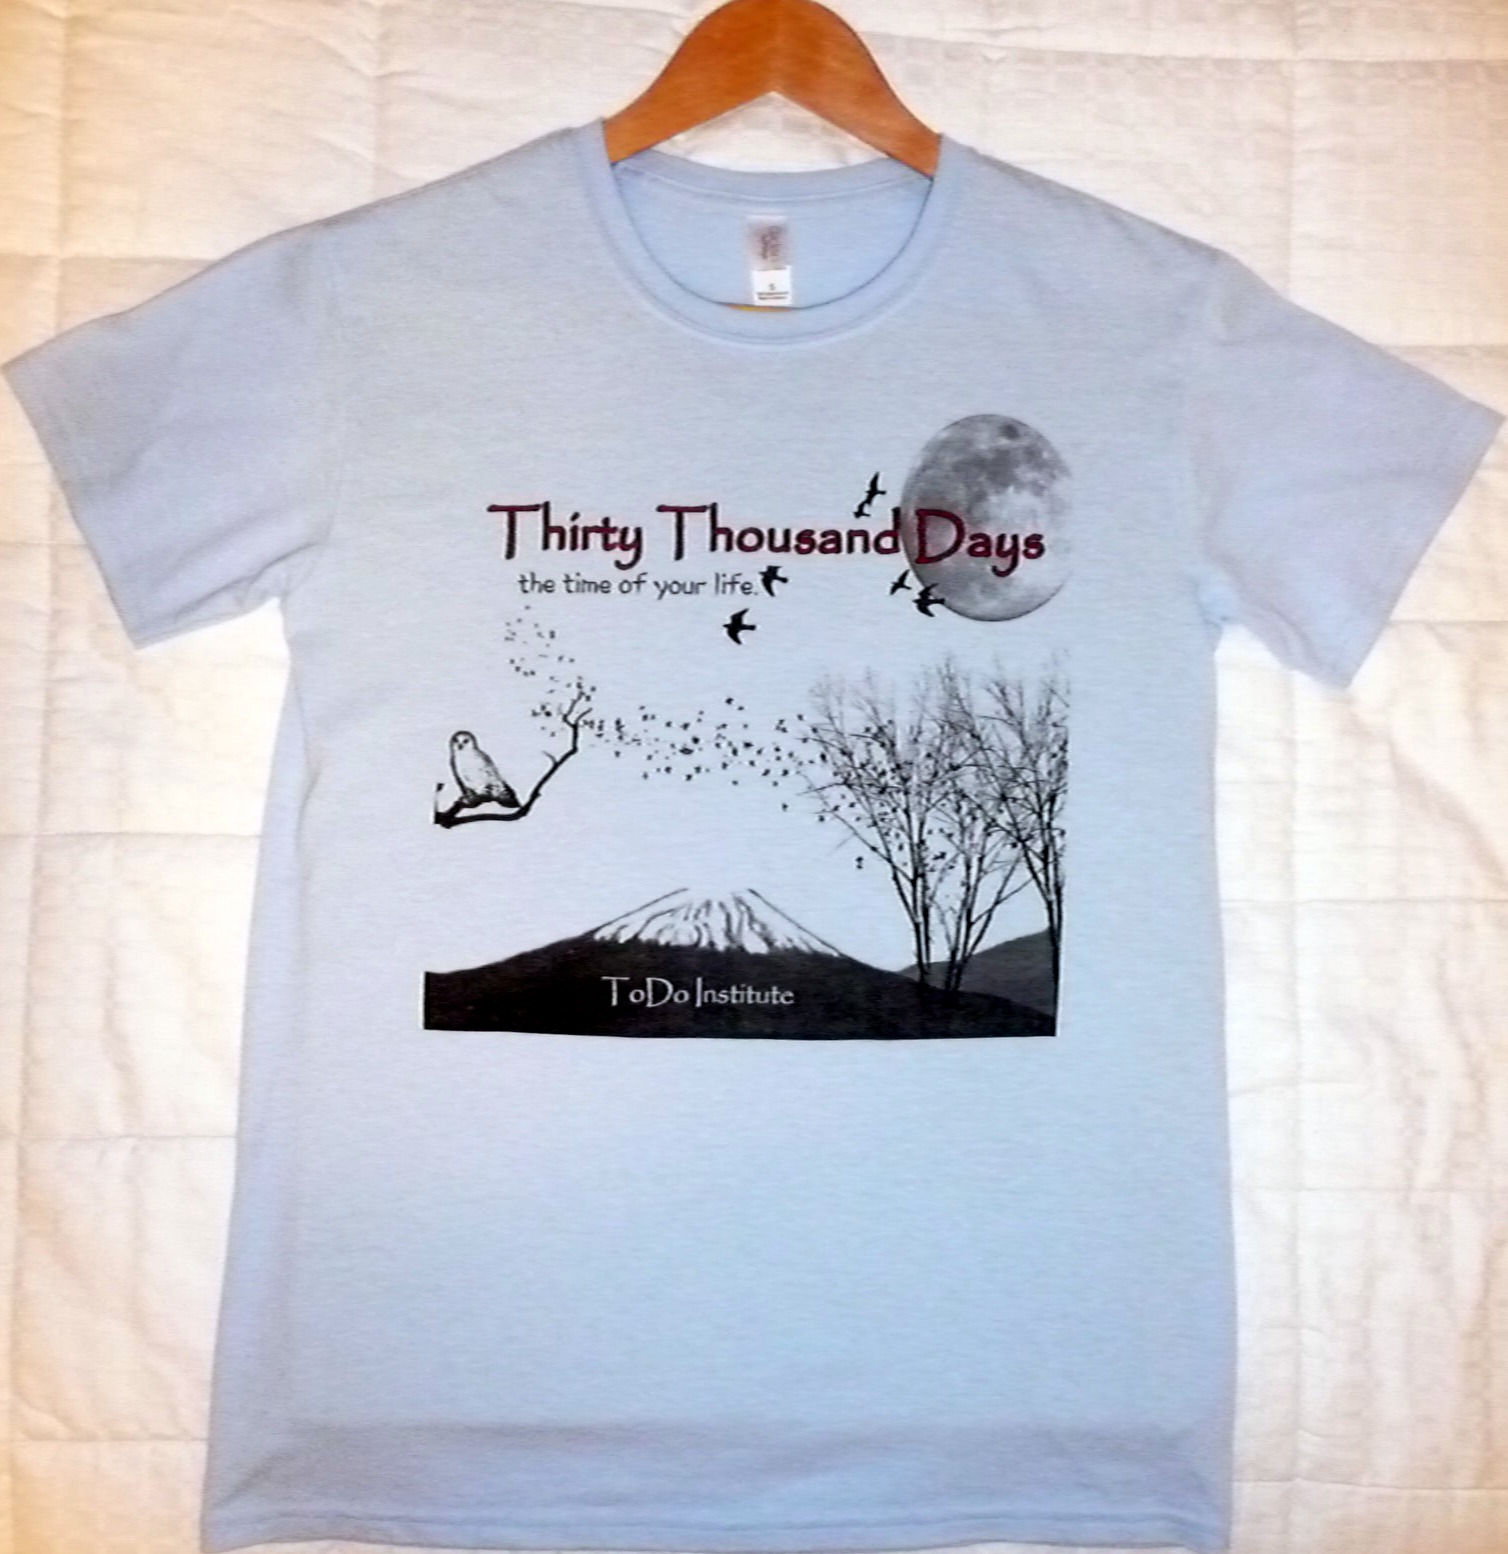 Thirty Thousand Days Soft Cotton T-Shirt - Regularly $12 - Click Image to Close